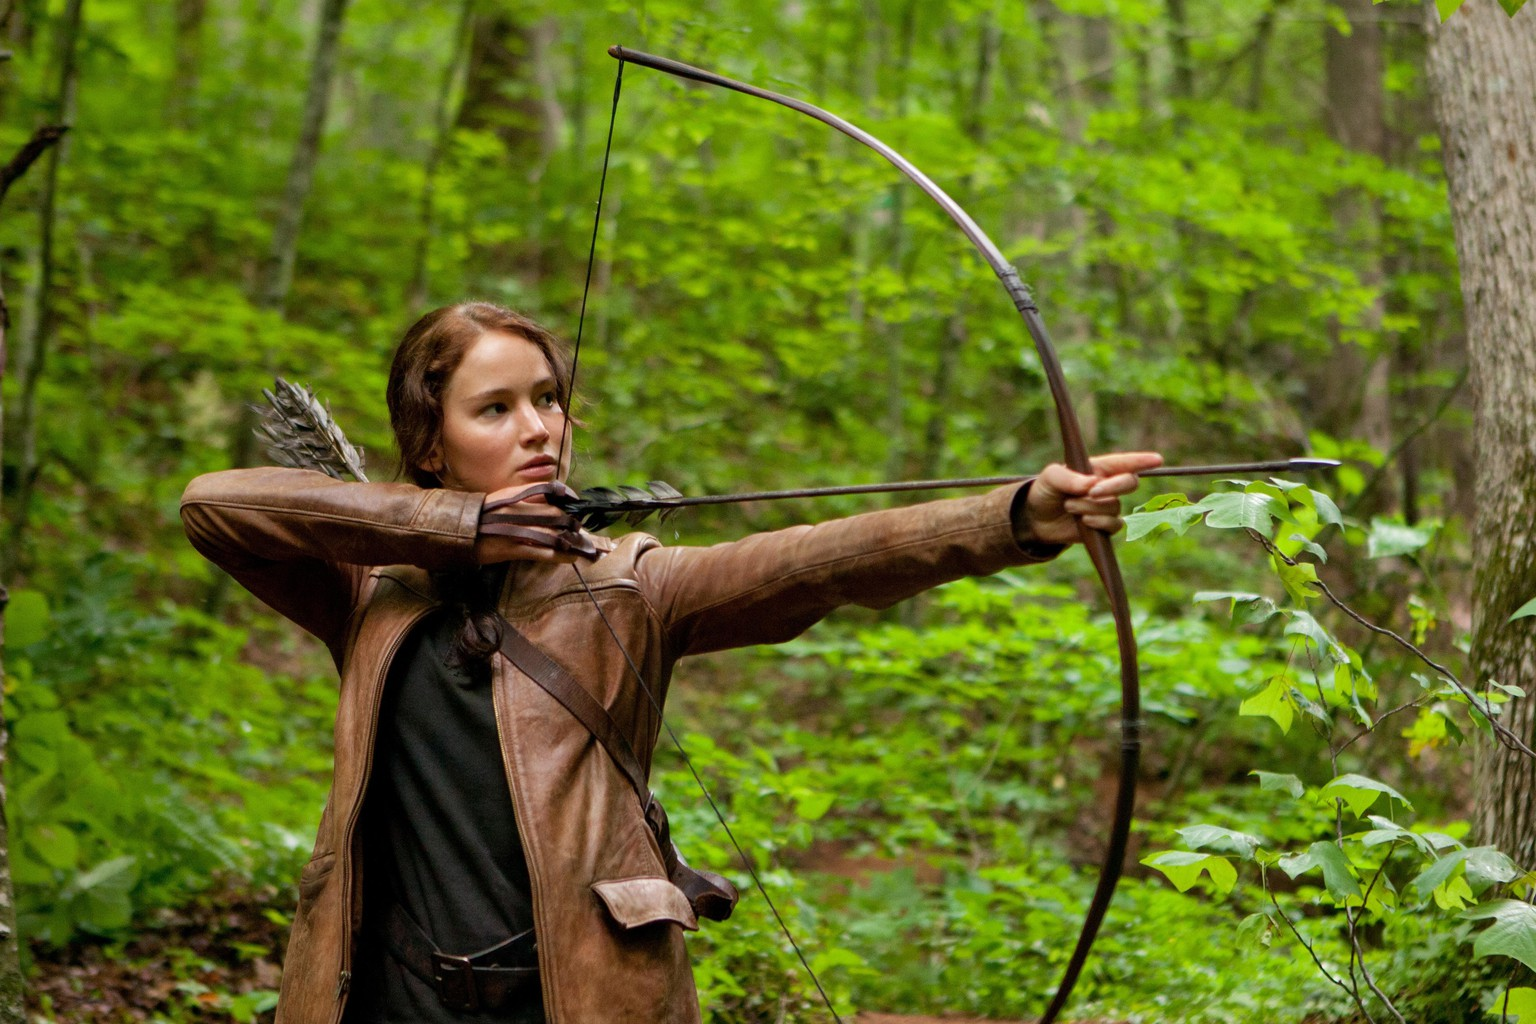 FILE - In this image released by Lionsgate, Jennifer Lawrence portrays Katniss Everdeen in a scene from